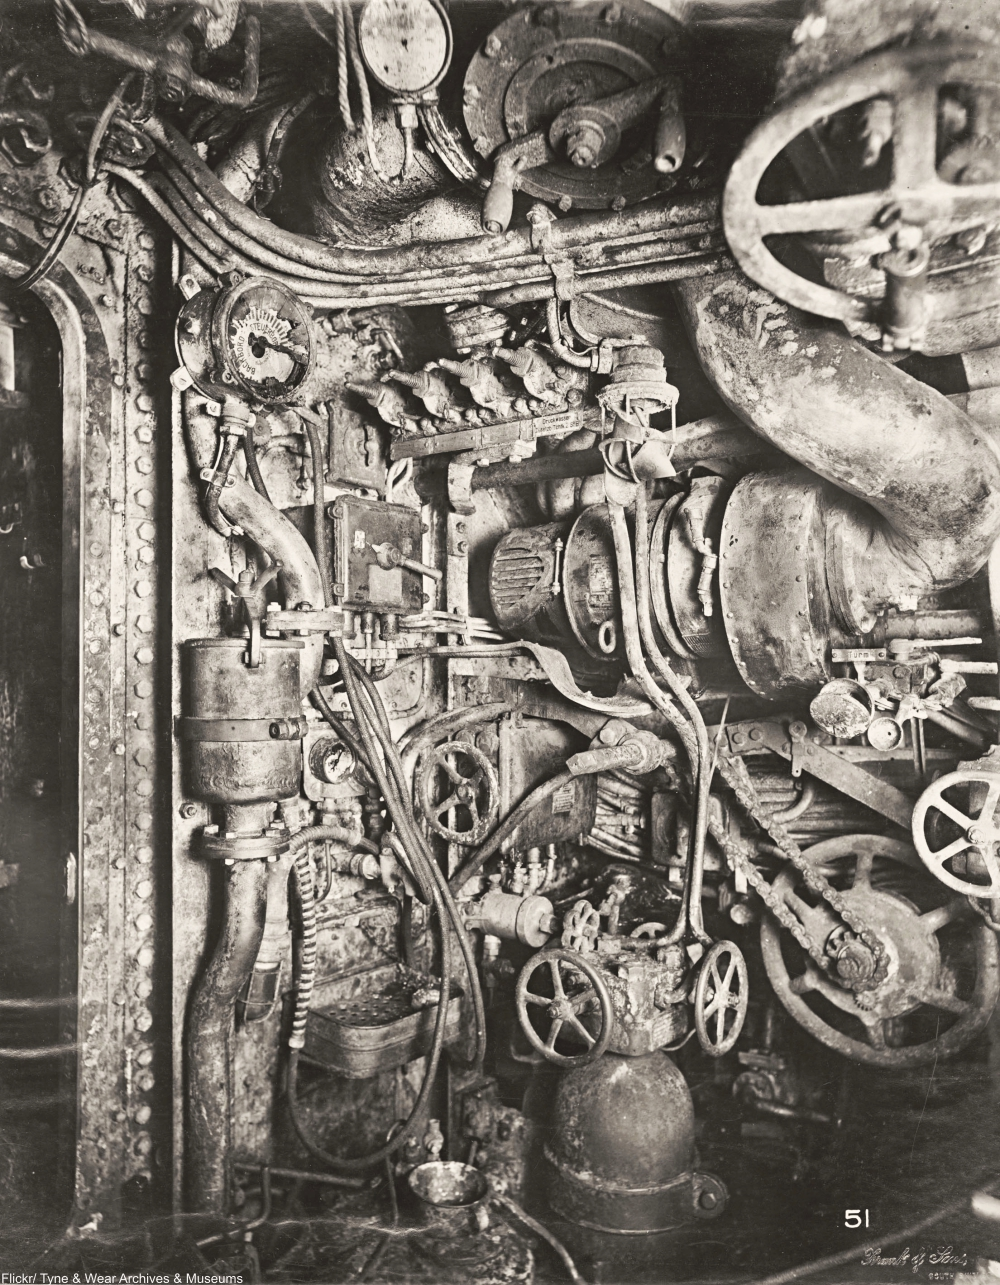 See a Rare Glimpse Inside a German U-Boat from WWI